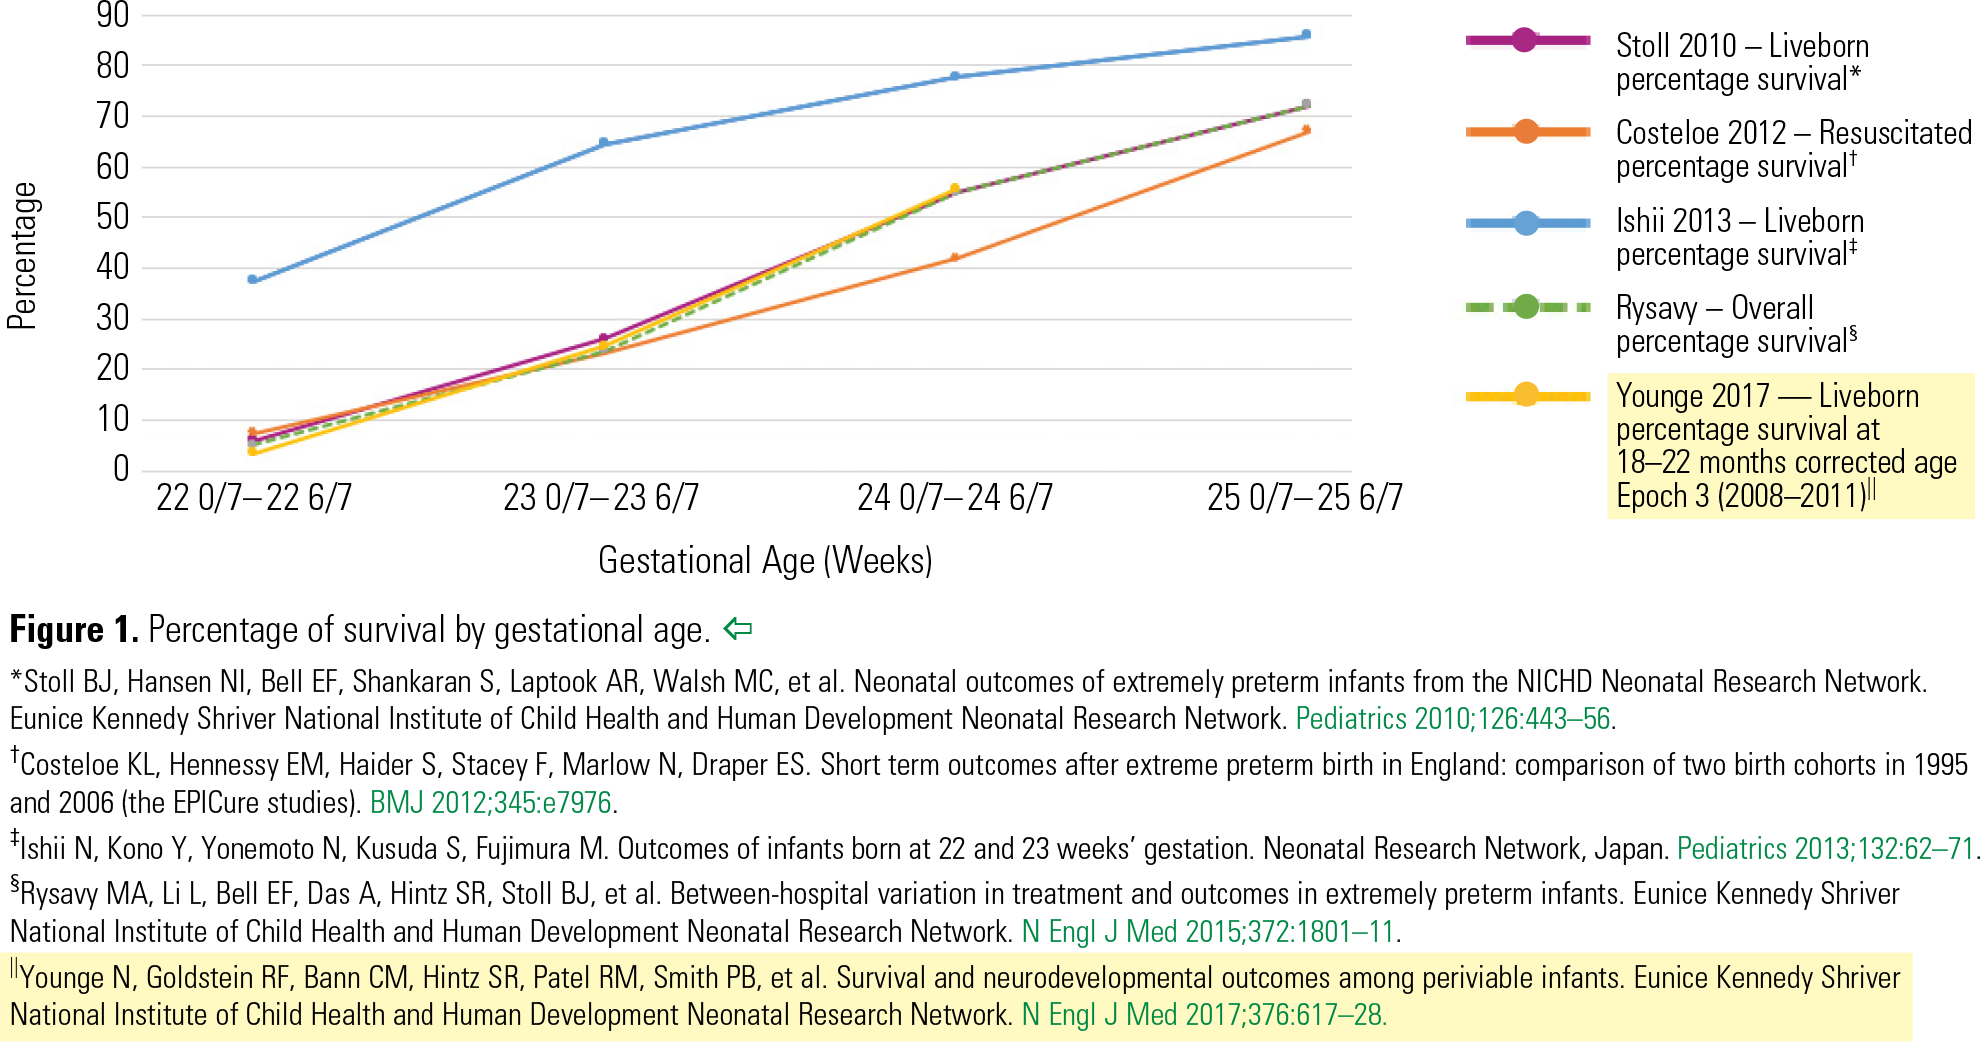 Figure 1. Percentage of survival by gestational age. *Stoll BJ, Hansen NI, Bell EF, Shankaran S, Laptook AR, Walsh MC, et al. Neonatal outcomes of extremely preterm infants from the NICHD Neonatal Research Network. Eunice Kennedy Shriver National Institute of Child Health and Human Development Neonatal Research Network. Pediatrics 2010;126:443–56. † Costeloe KL, Hennessy EM, Haider S, Stacey F, Marlow N, Draper ES. Short term outcomes after extreme preterm birth in England: comparison of two birth cohorts in 1995 and 2006 (the EPICure studies). BMJ 2012;345:e7976. ‡ Ishii N, Kono Y, Yonemoto N, Kusuda S, Fujimura M. Outcomes of infants born at 22 and 23 weeks' gestation. Neonatal Research Network, Japan. Pediatrics 2013;132:62–71. § Rysavy MA, Li L, Bell EF, Das A, Hintz SR, Stoll BJ, et al. Between-hospital variation in treatment and outcomes in extremely preterm infants. Eunice Kennedy Shriver National Institute of Child Health and Human Development Neonatal Research Network. N Engl J Med 2015;372:1801–11. || Younge N, Goldstein RF, Bann CM, Hintz SR, Patel RM, Smith PB, et al. Survival and neurodevelopmental outcomes among periviable infants. Eunice Kennedy Shriver National Institute of Child Health and Human Development Neonatal Research Network. N Engl J Med 2017;376:617–28.